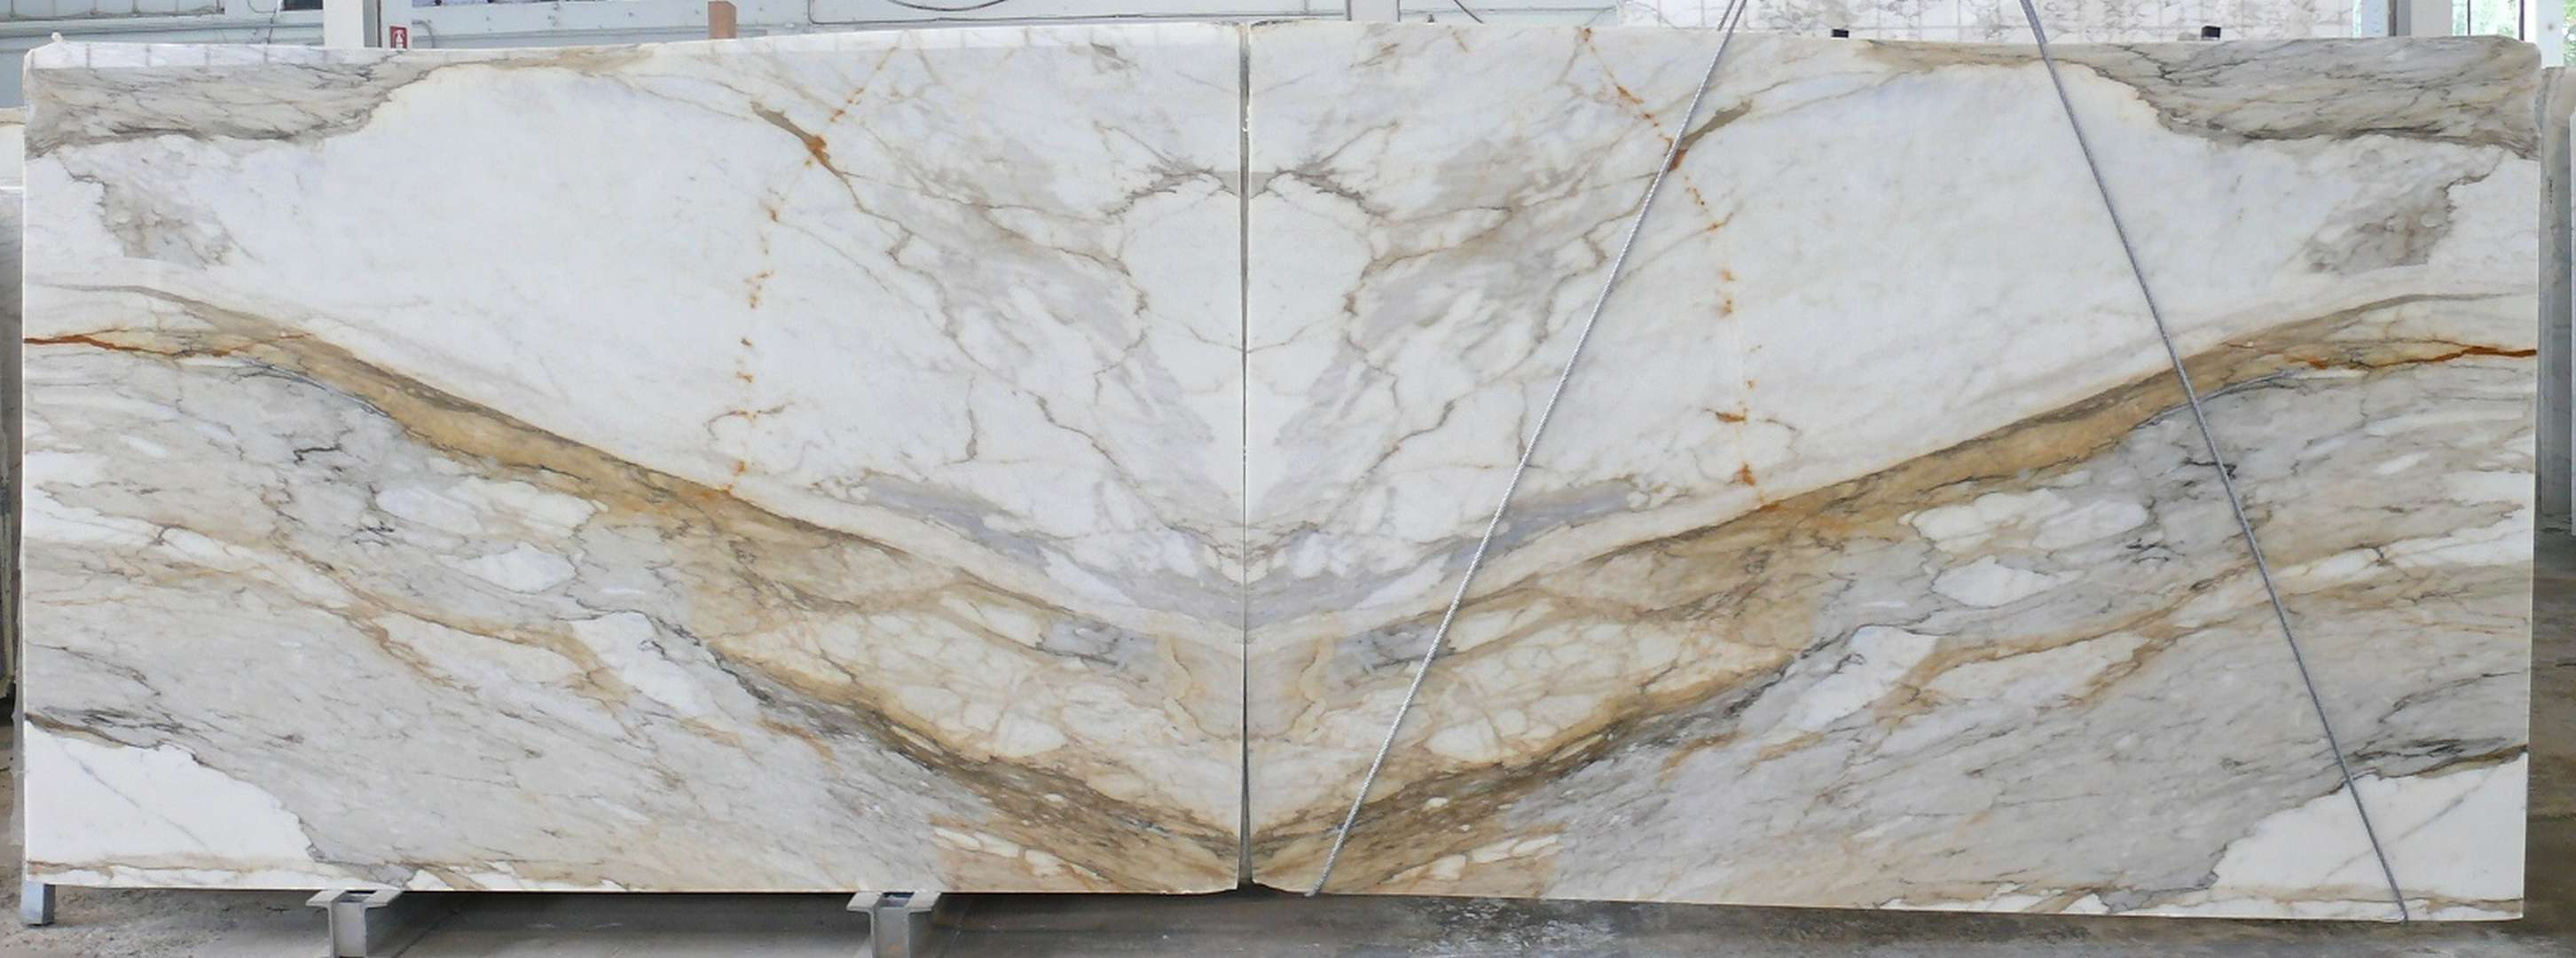 Calacatta Gold Natural Marble Slabs